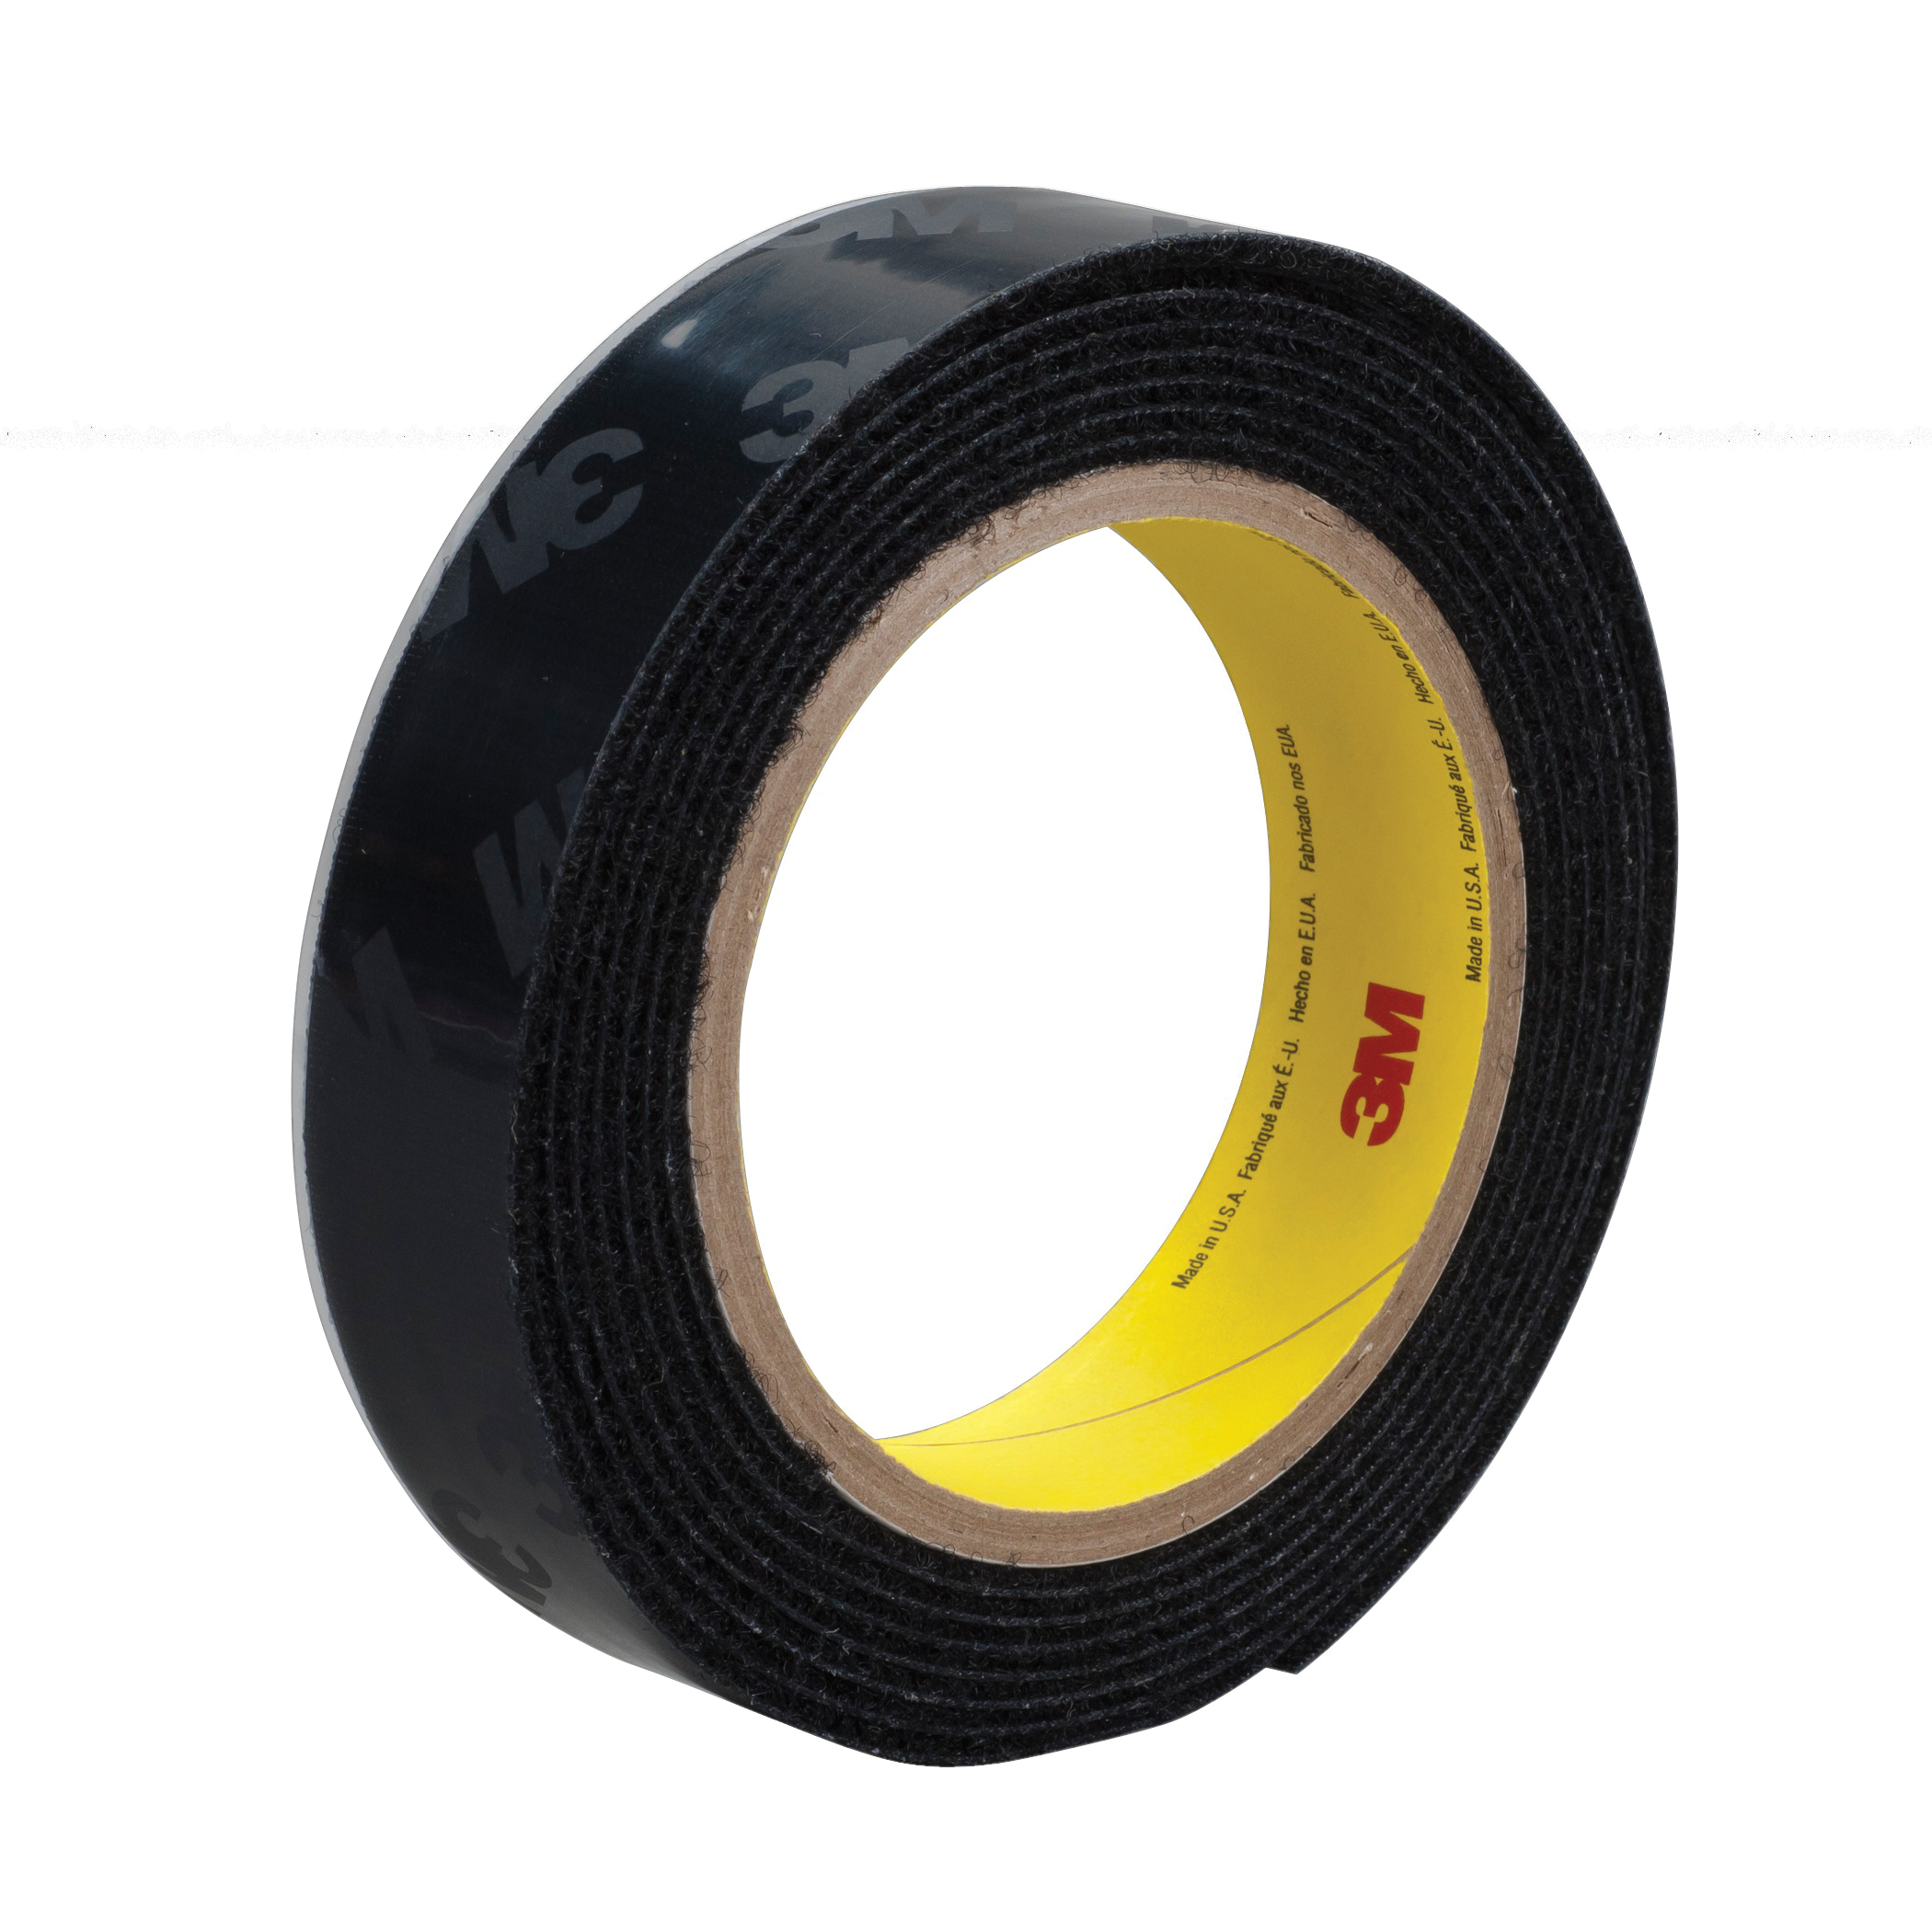 3M™ 021200-87361 Reclosable Loop Fastener Tape, 50 yd L x 3/4 in W, 0.15 in THK Engaged, Synthetic Rubber Adhesive, Woven Nylon Backing, Black